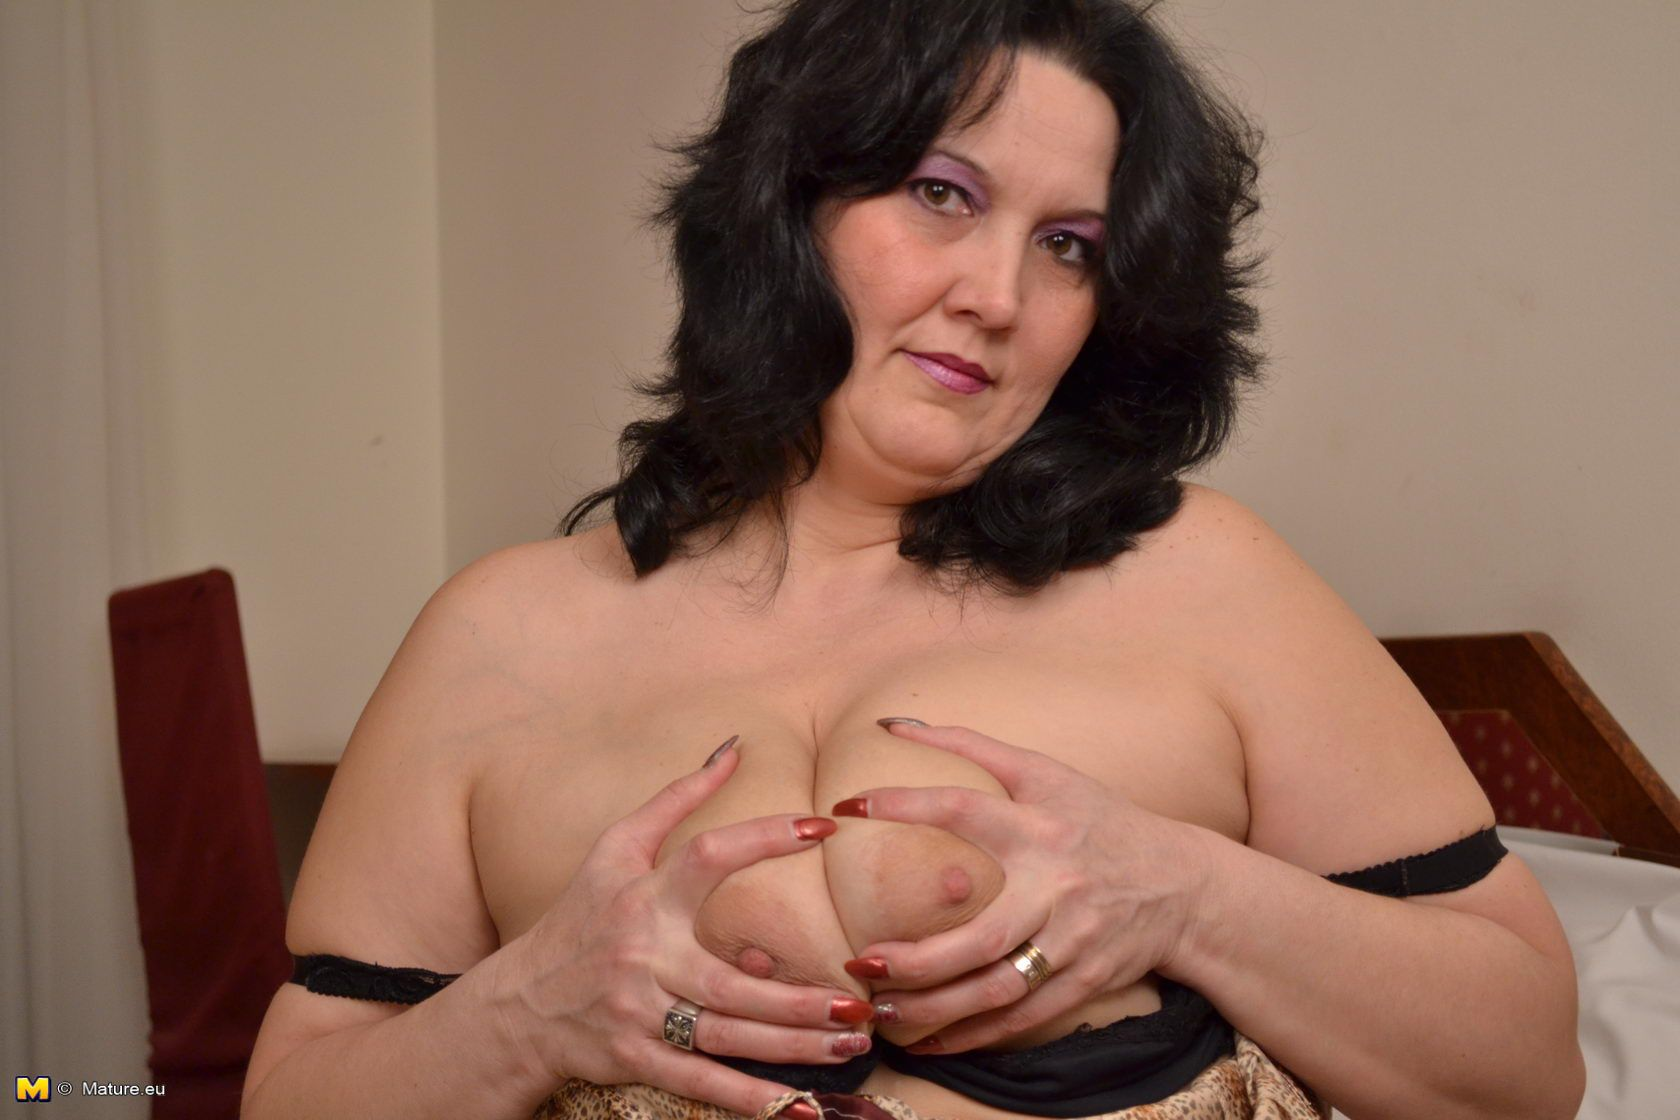 With pussy milf playing Mature think, that